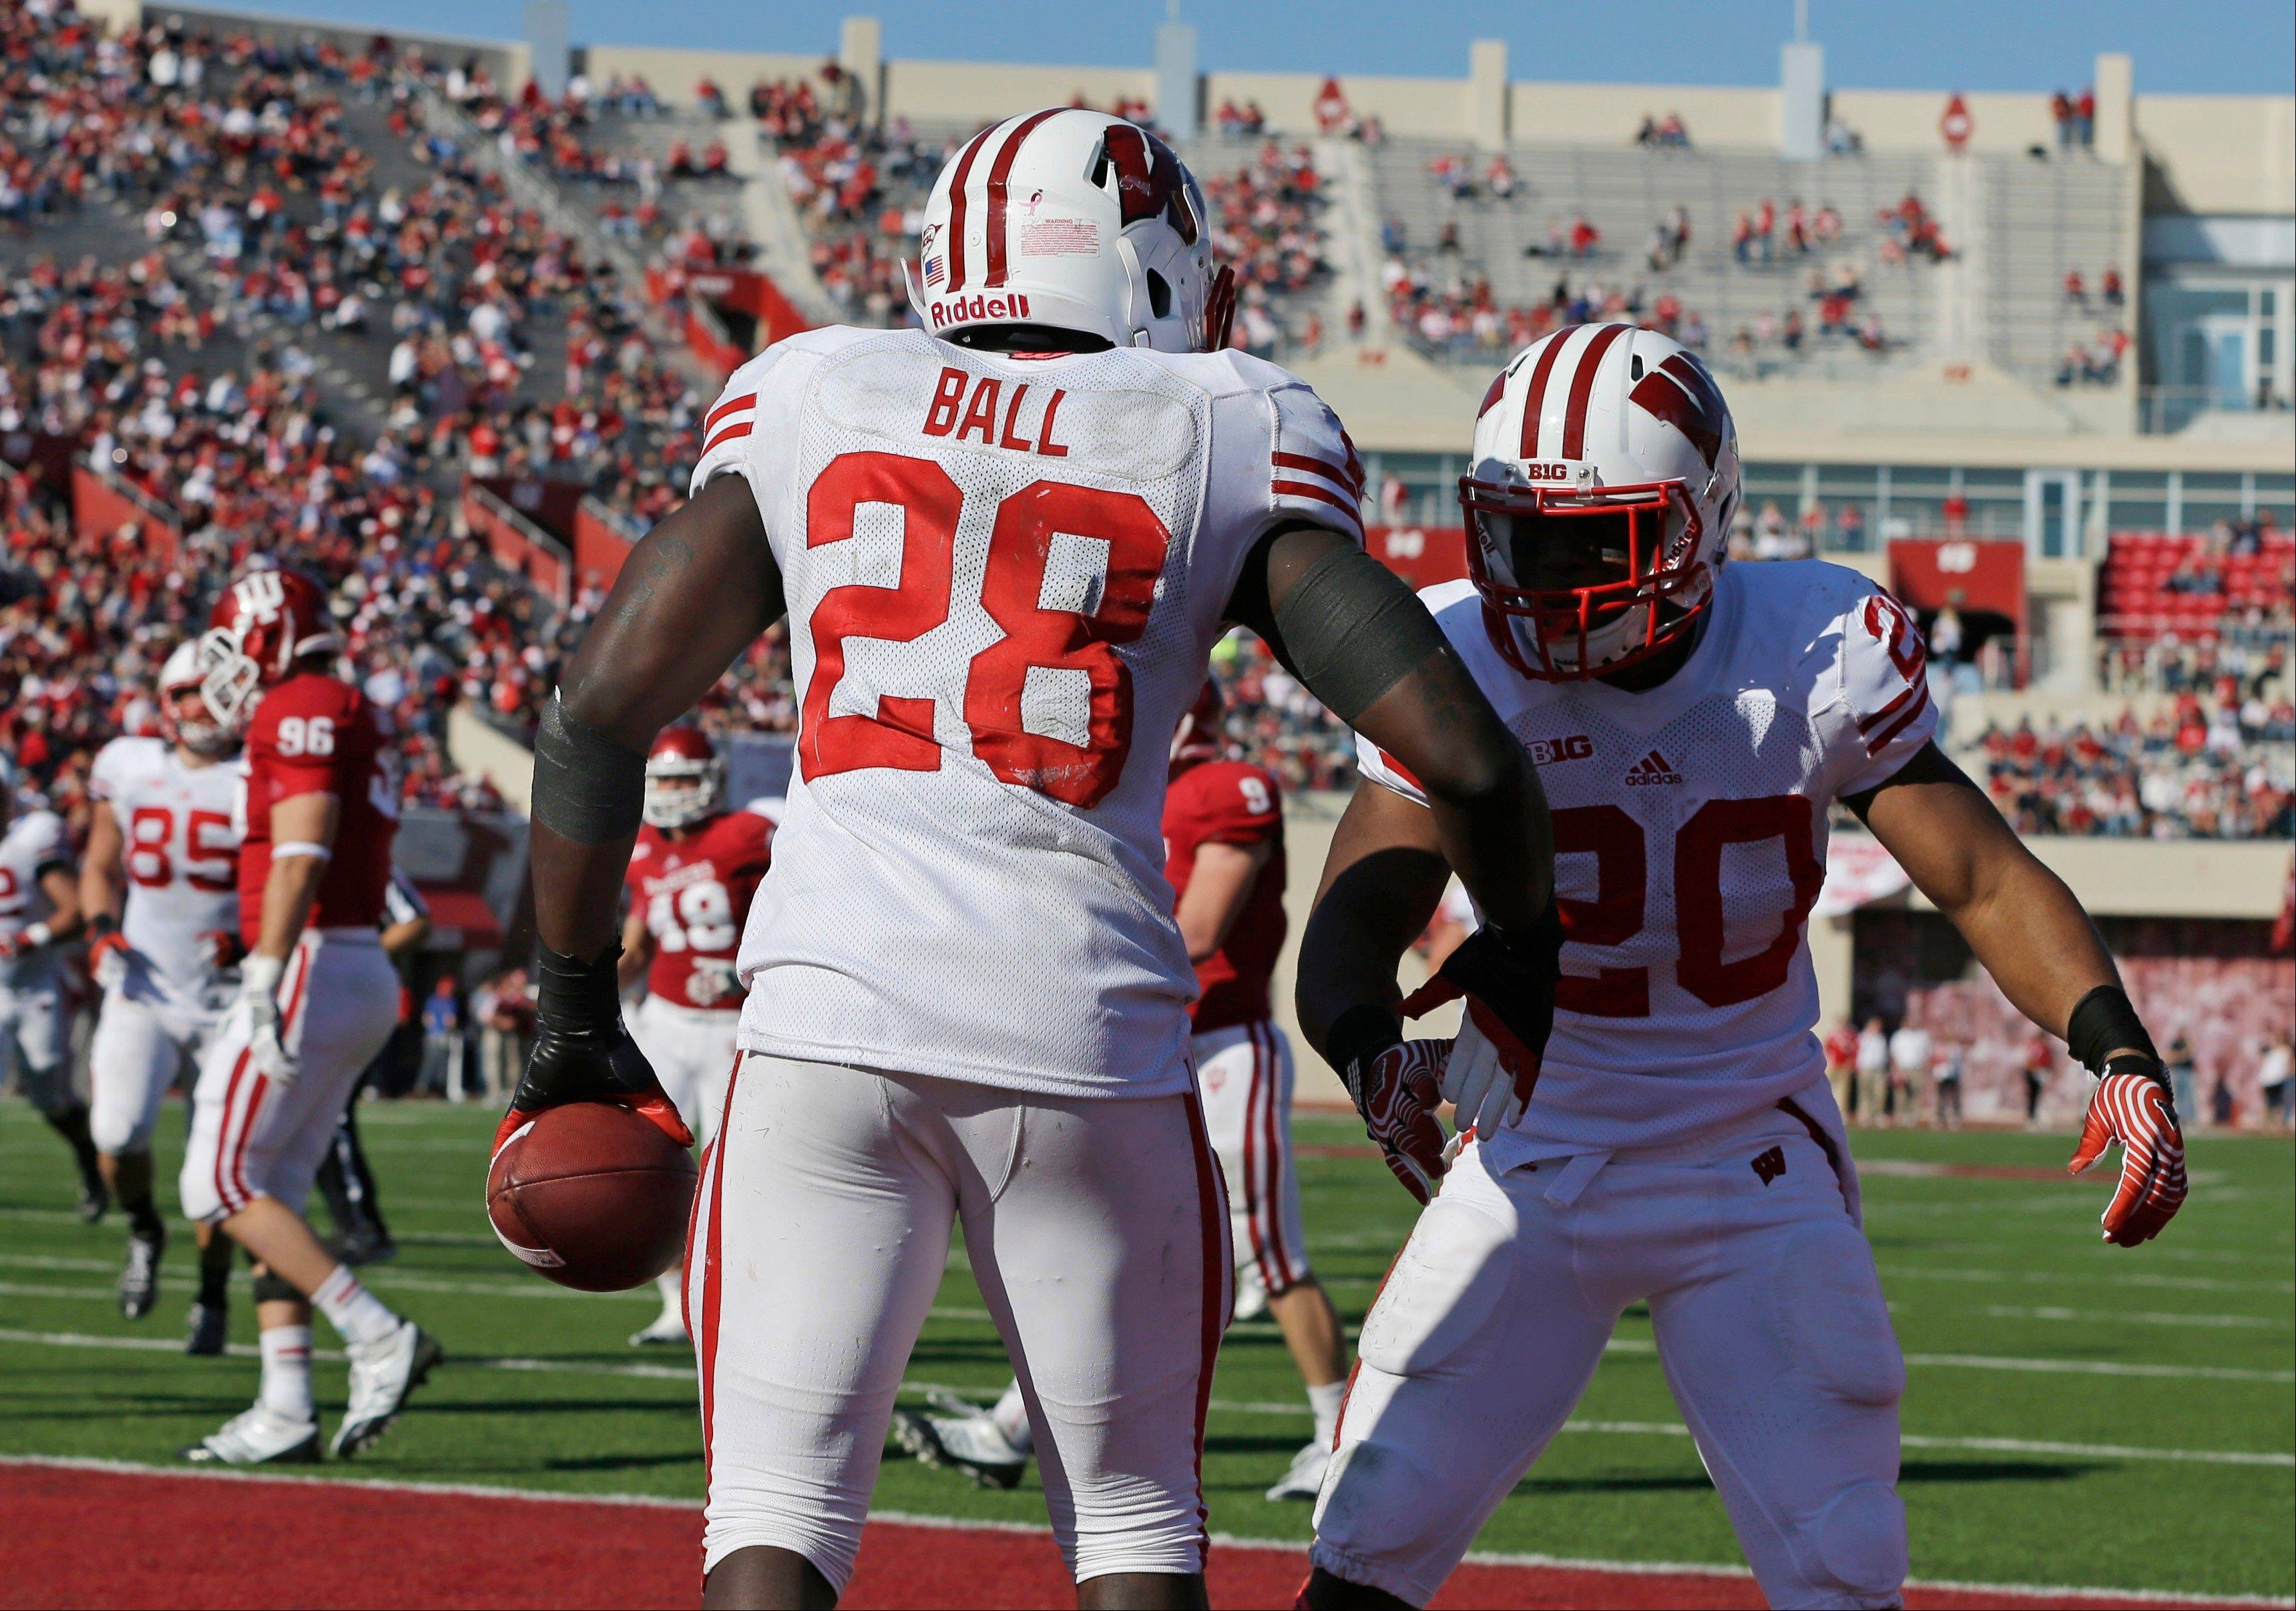 Wisconsin's Montee Ball and James White celebrate Saturday after Ball ran 49-yards for a touchdown during the second half against Indiana in Bloomington.